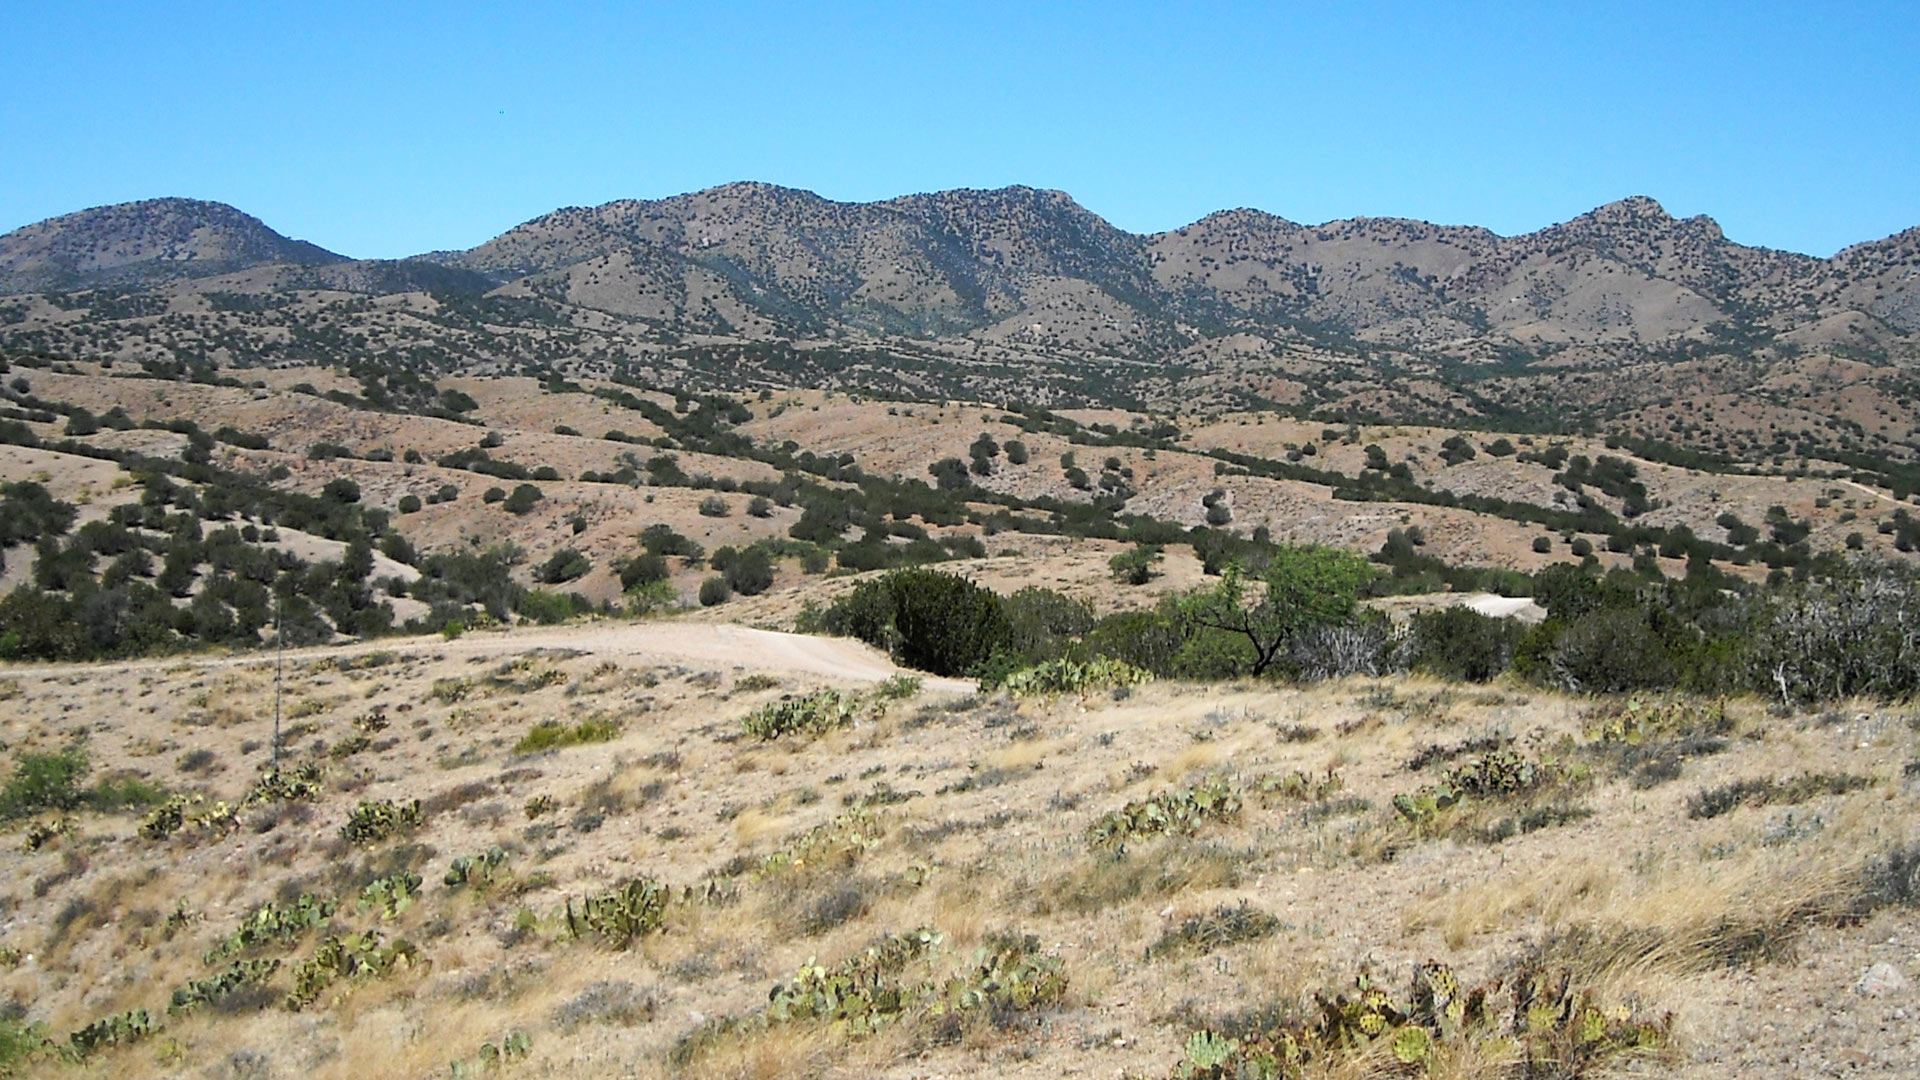 The proposed site of the Rosemont Copper mining project is in the Santa Rita Mountains in Southern Arizona.